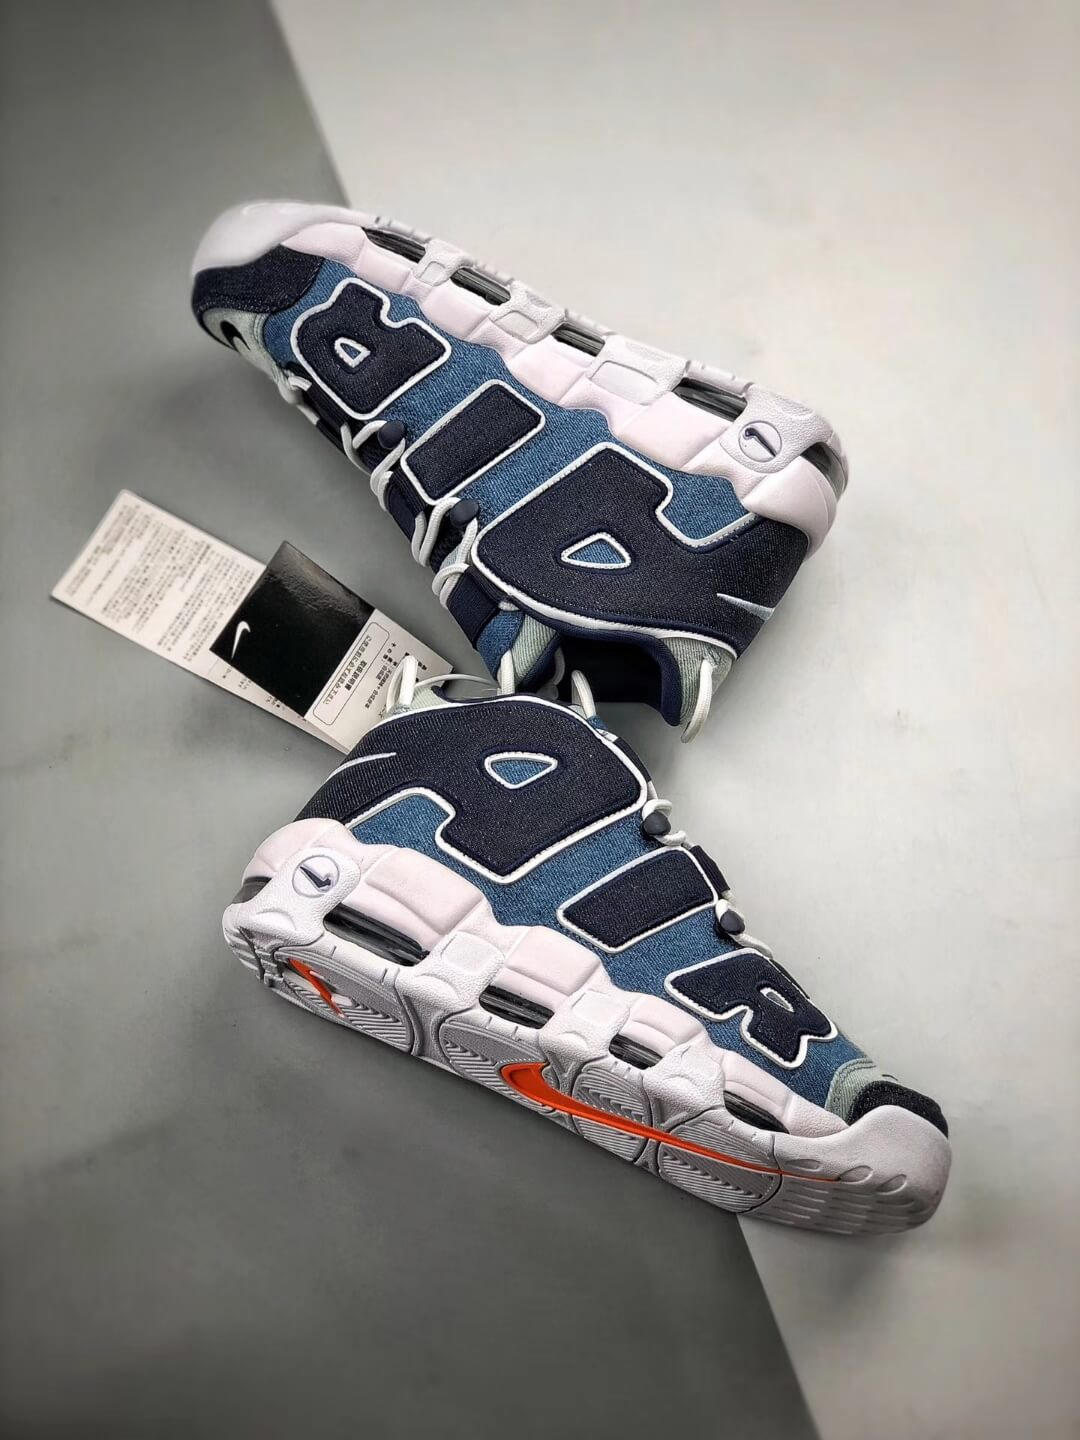 The Nike Air More Uptempo 96 Denim Sneaker Blue jean Fabric Style Large AIR Scottie Pippen Repshoes 08